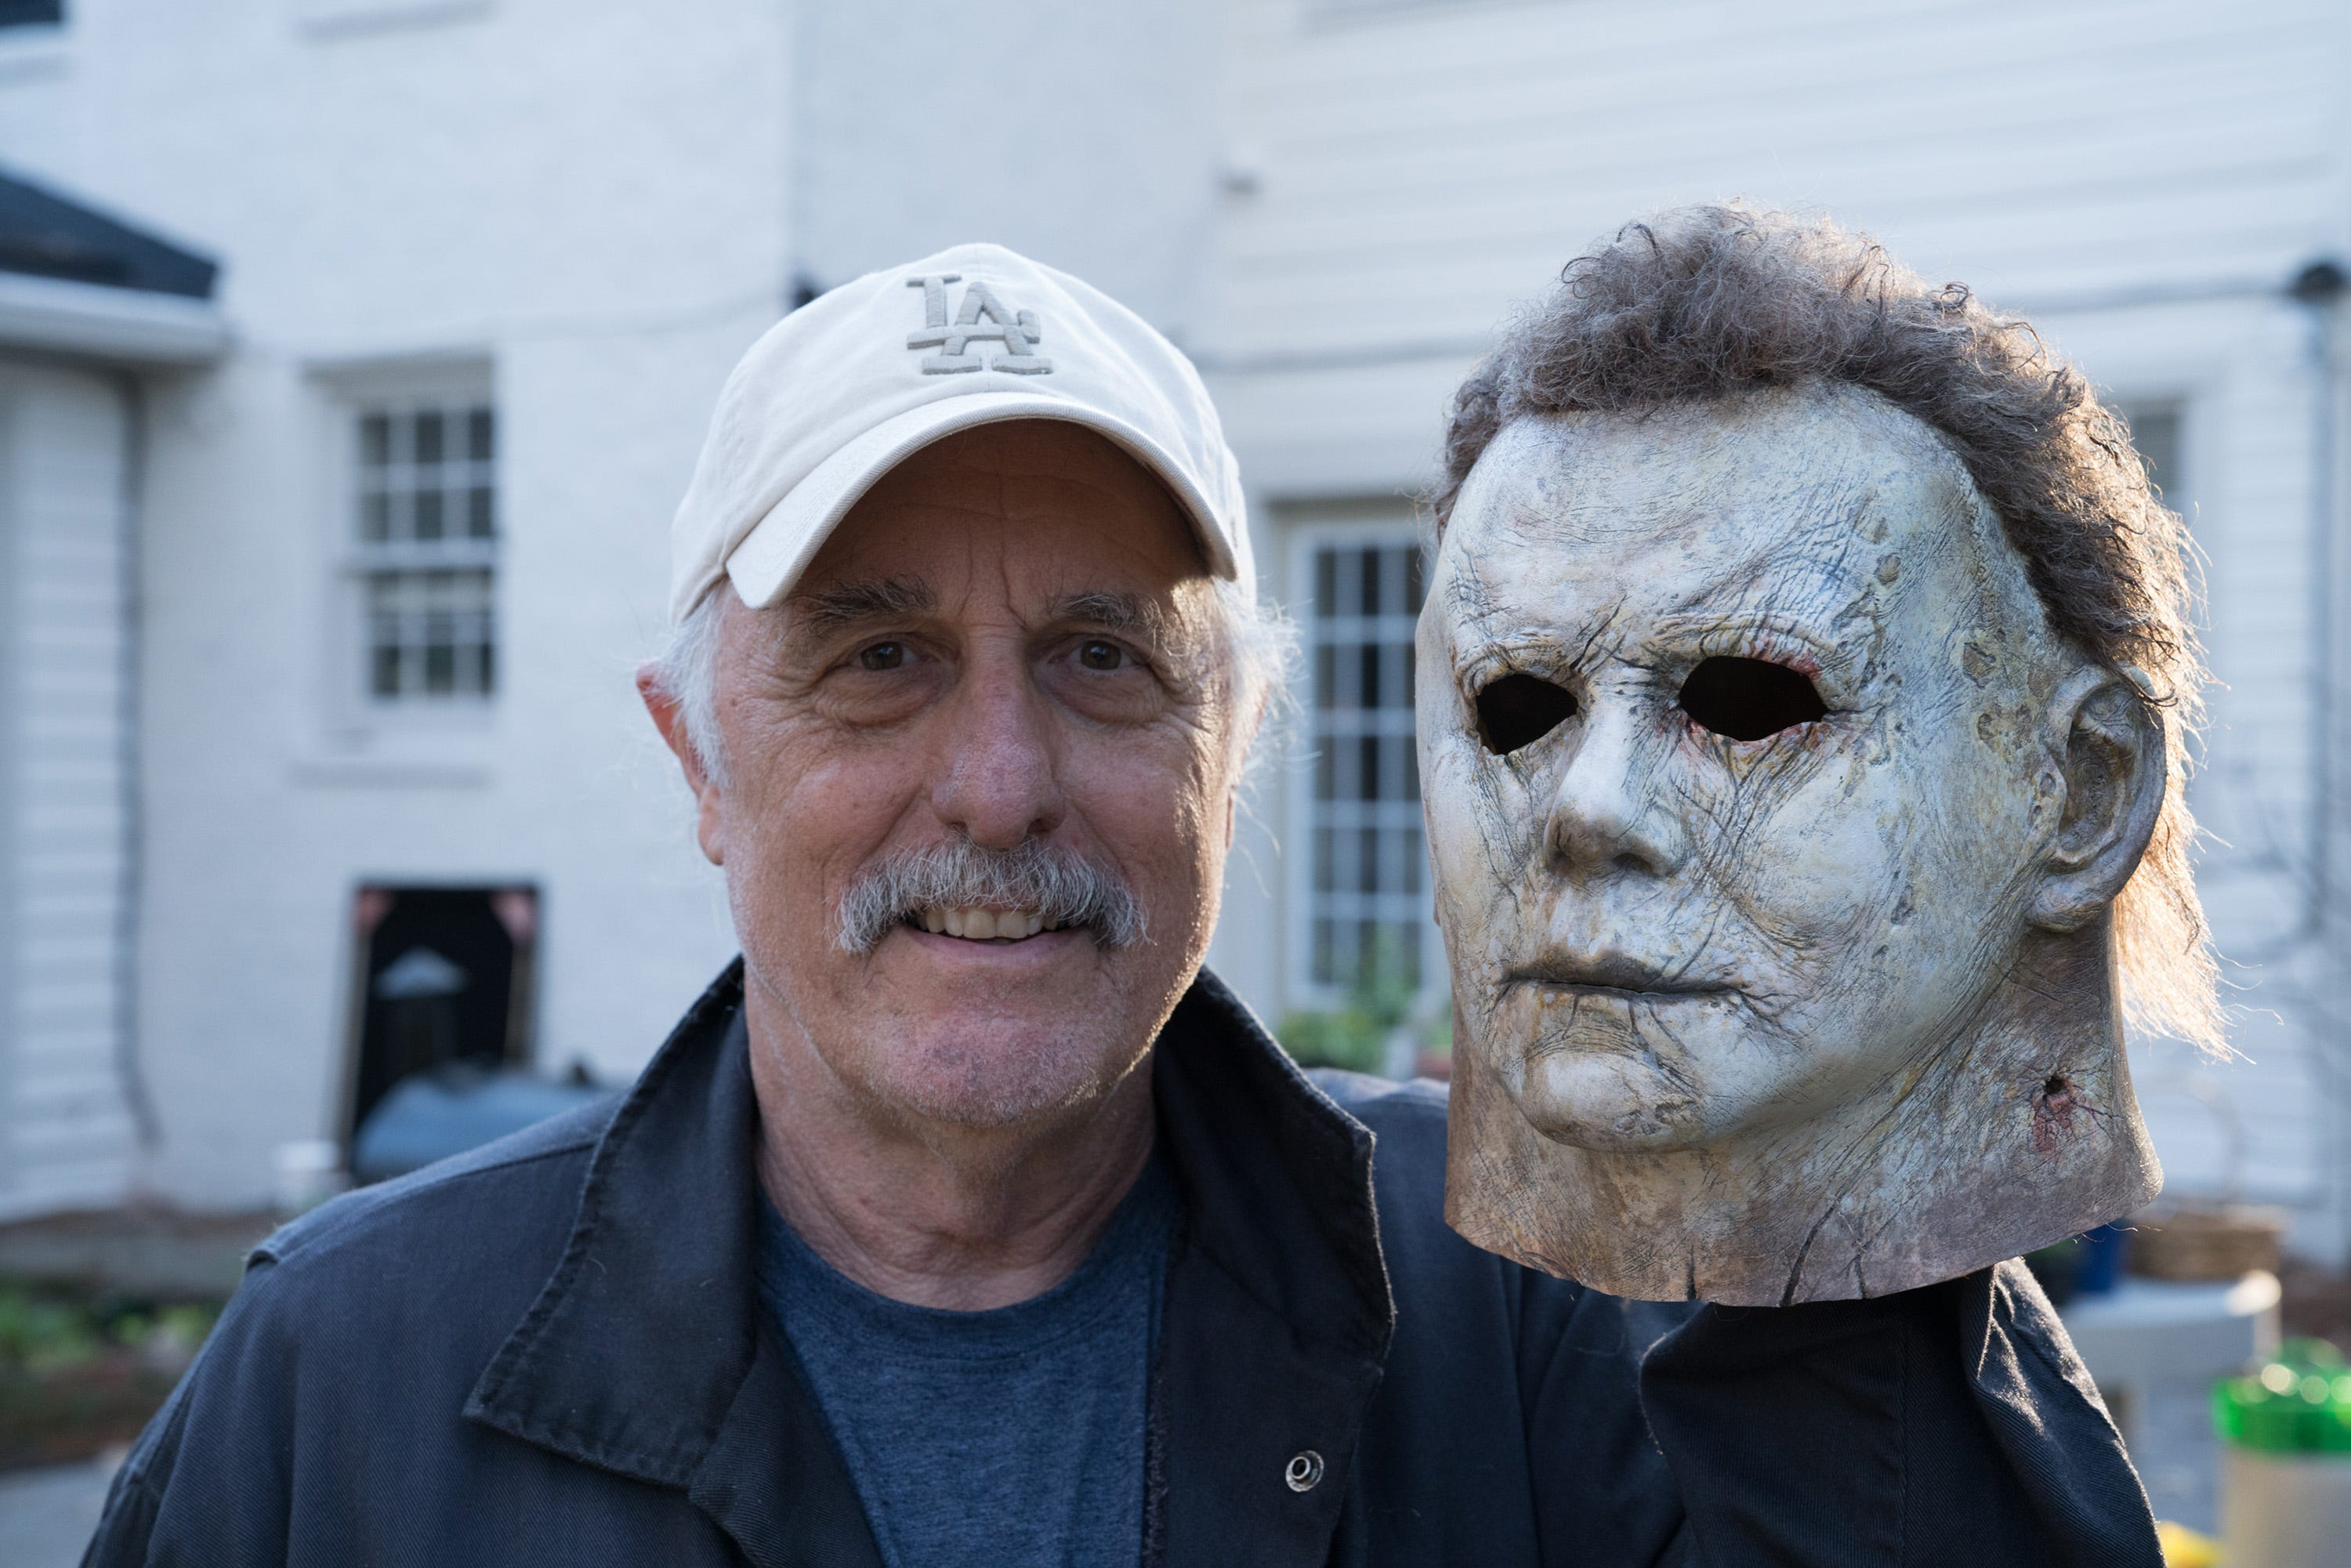 Actor Muchael Halloween 2020 Halloween': Nick Castle puts on the mask once more as Michael Myers